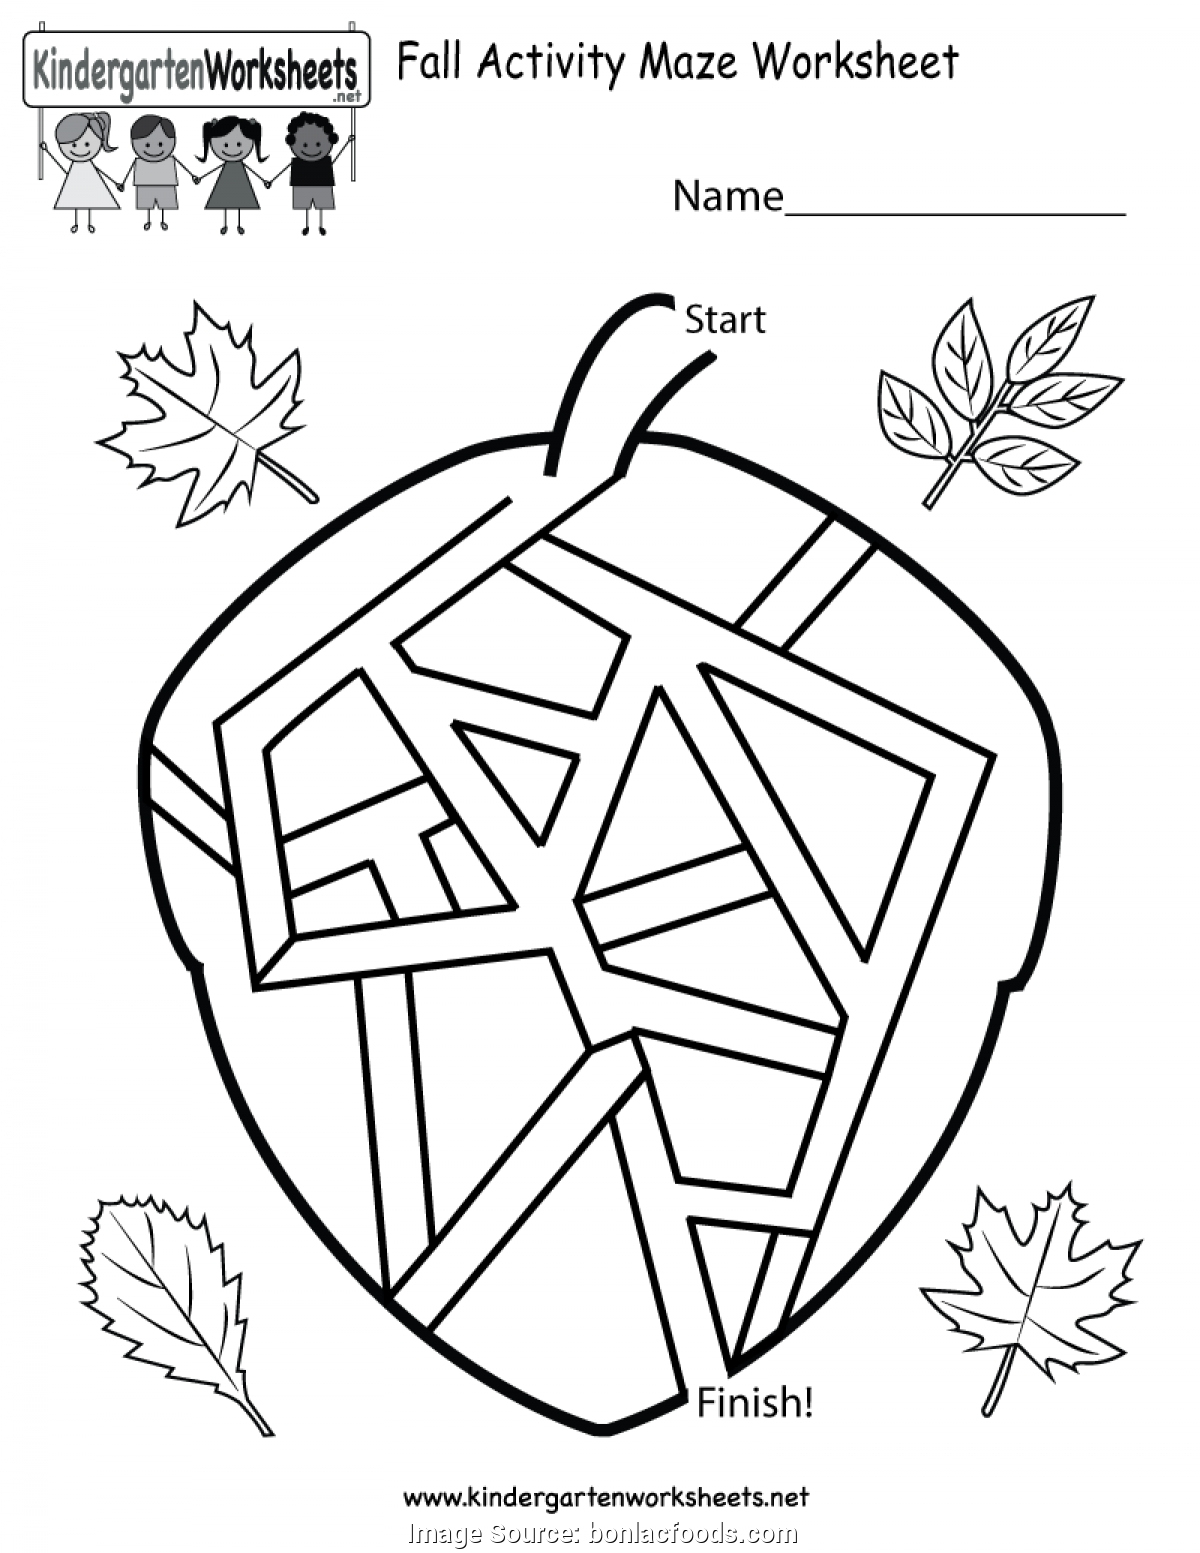 Luxury Free Fall Worksheets For Kindergarten | Fun Worksheet - Free Printable Autumn Worksheets